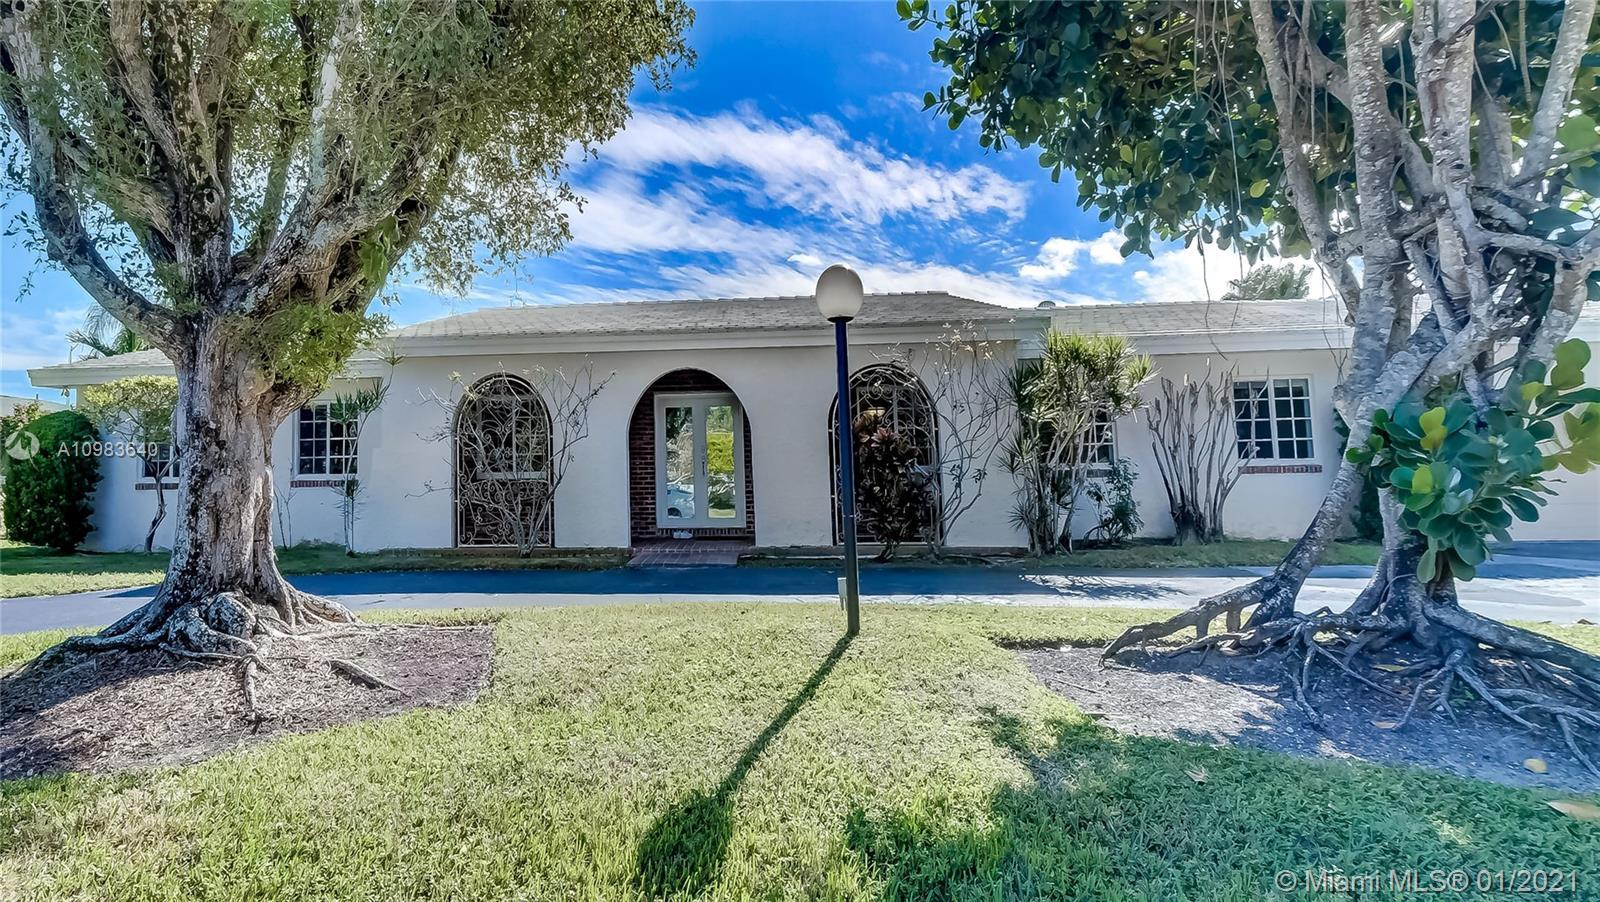 Stunning one-story home located on a wide canal in Pinecrest. This extremely bright 6 beds/3 baths +